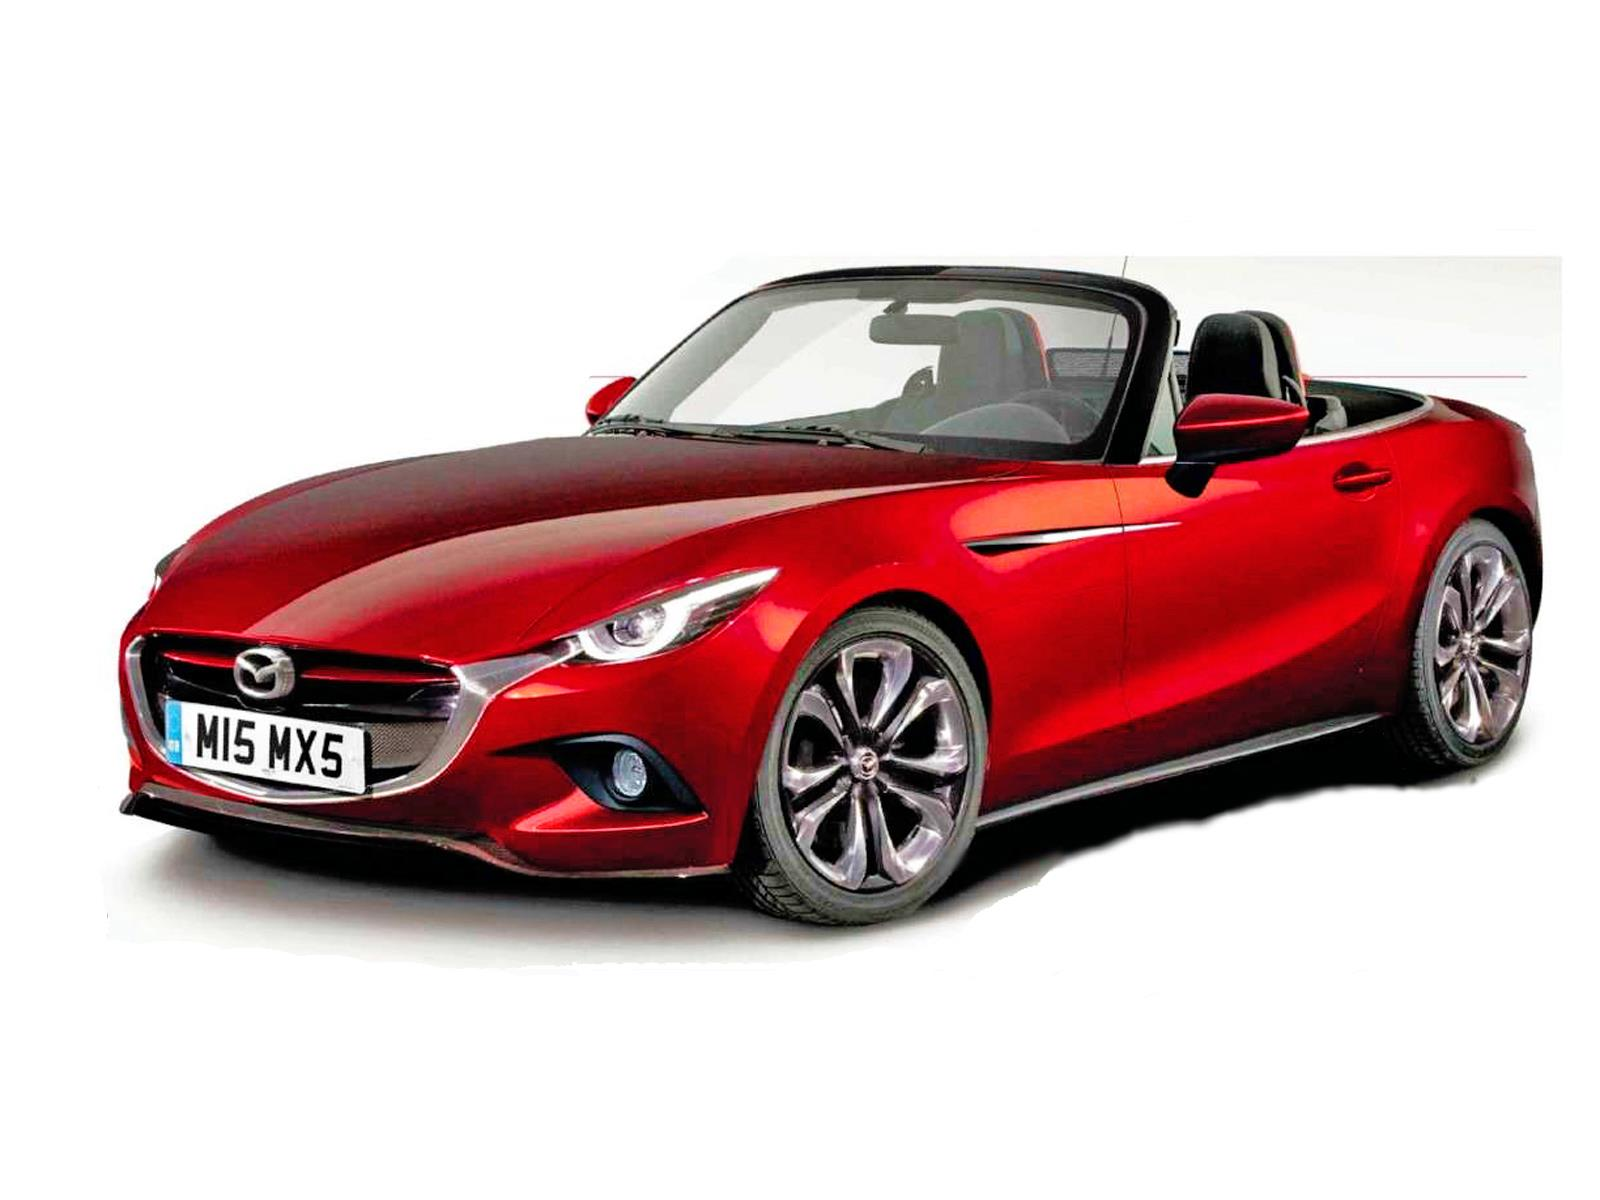 2019 mazda mx 5 car photos catalog 2018. Black Bedroom Furniture Sets. Home Design Ideas